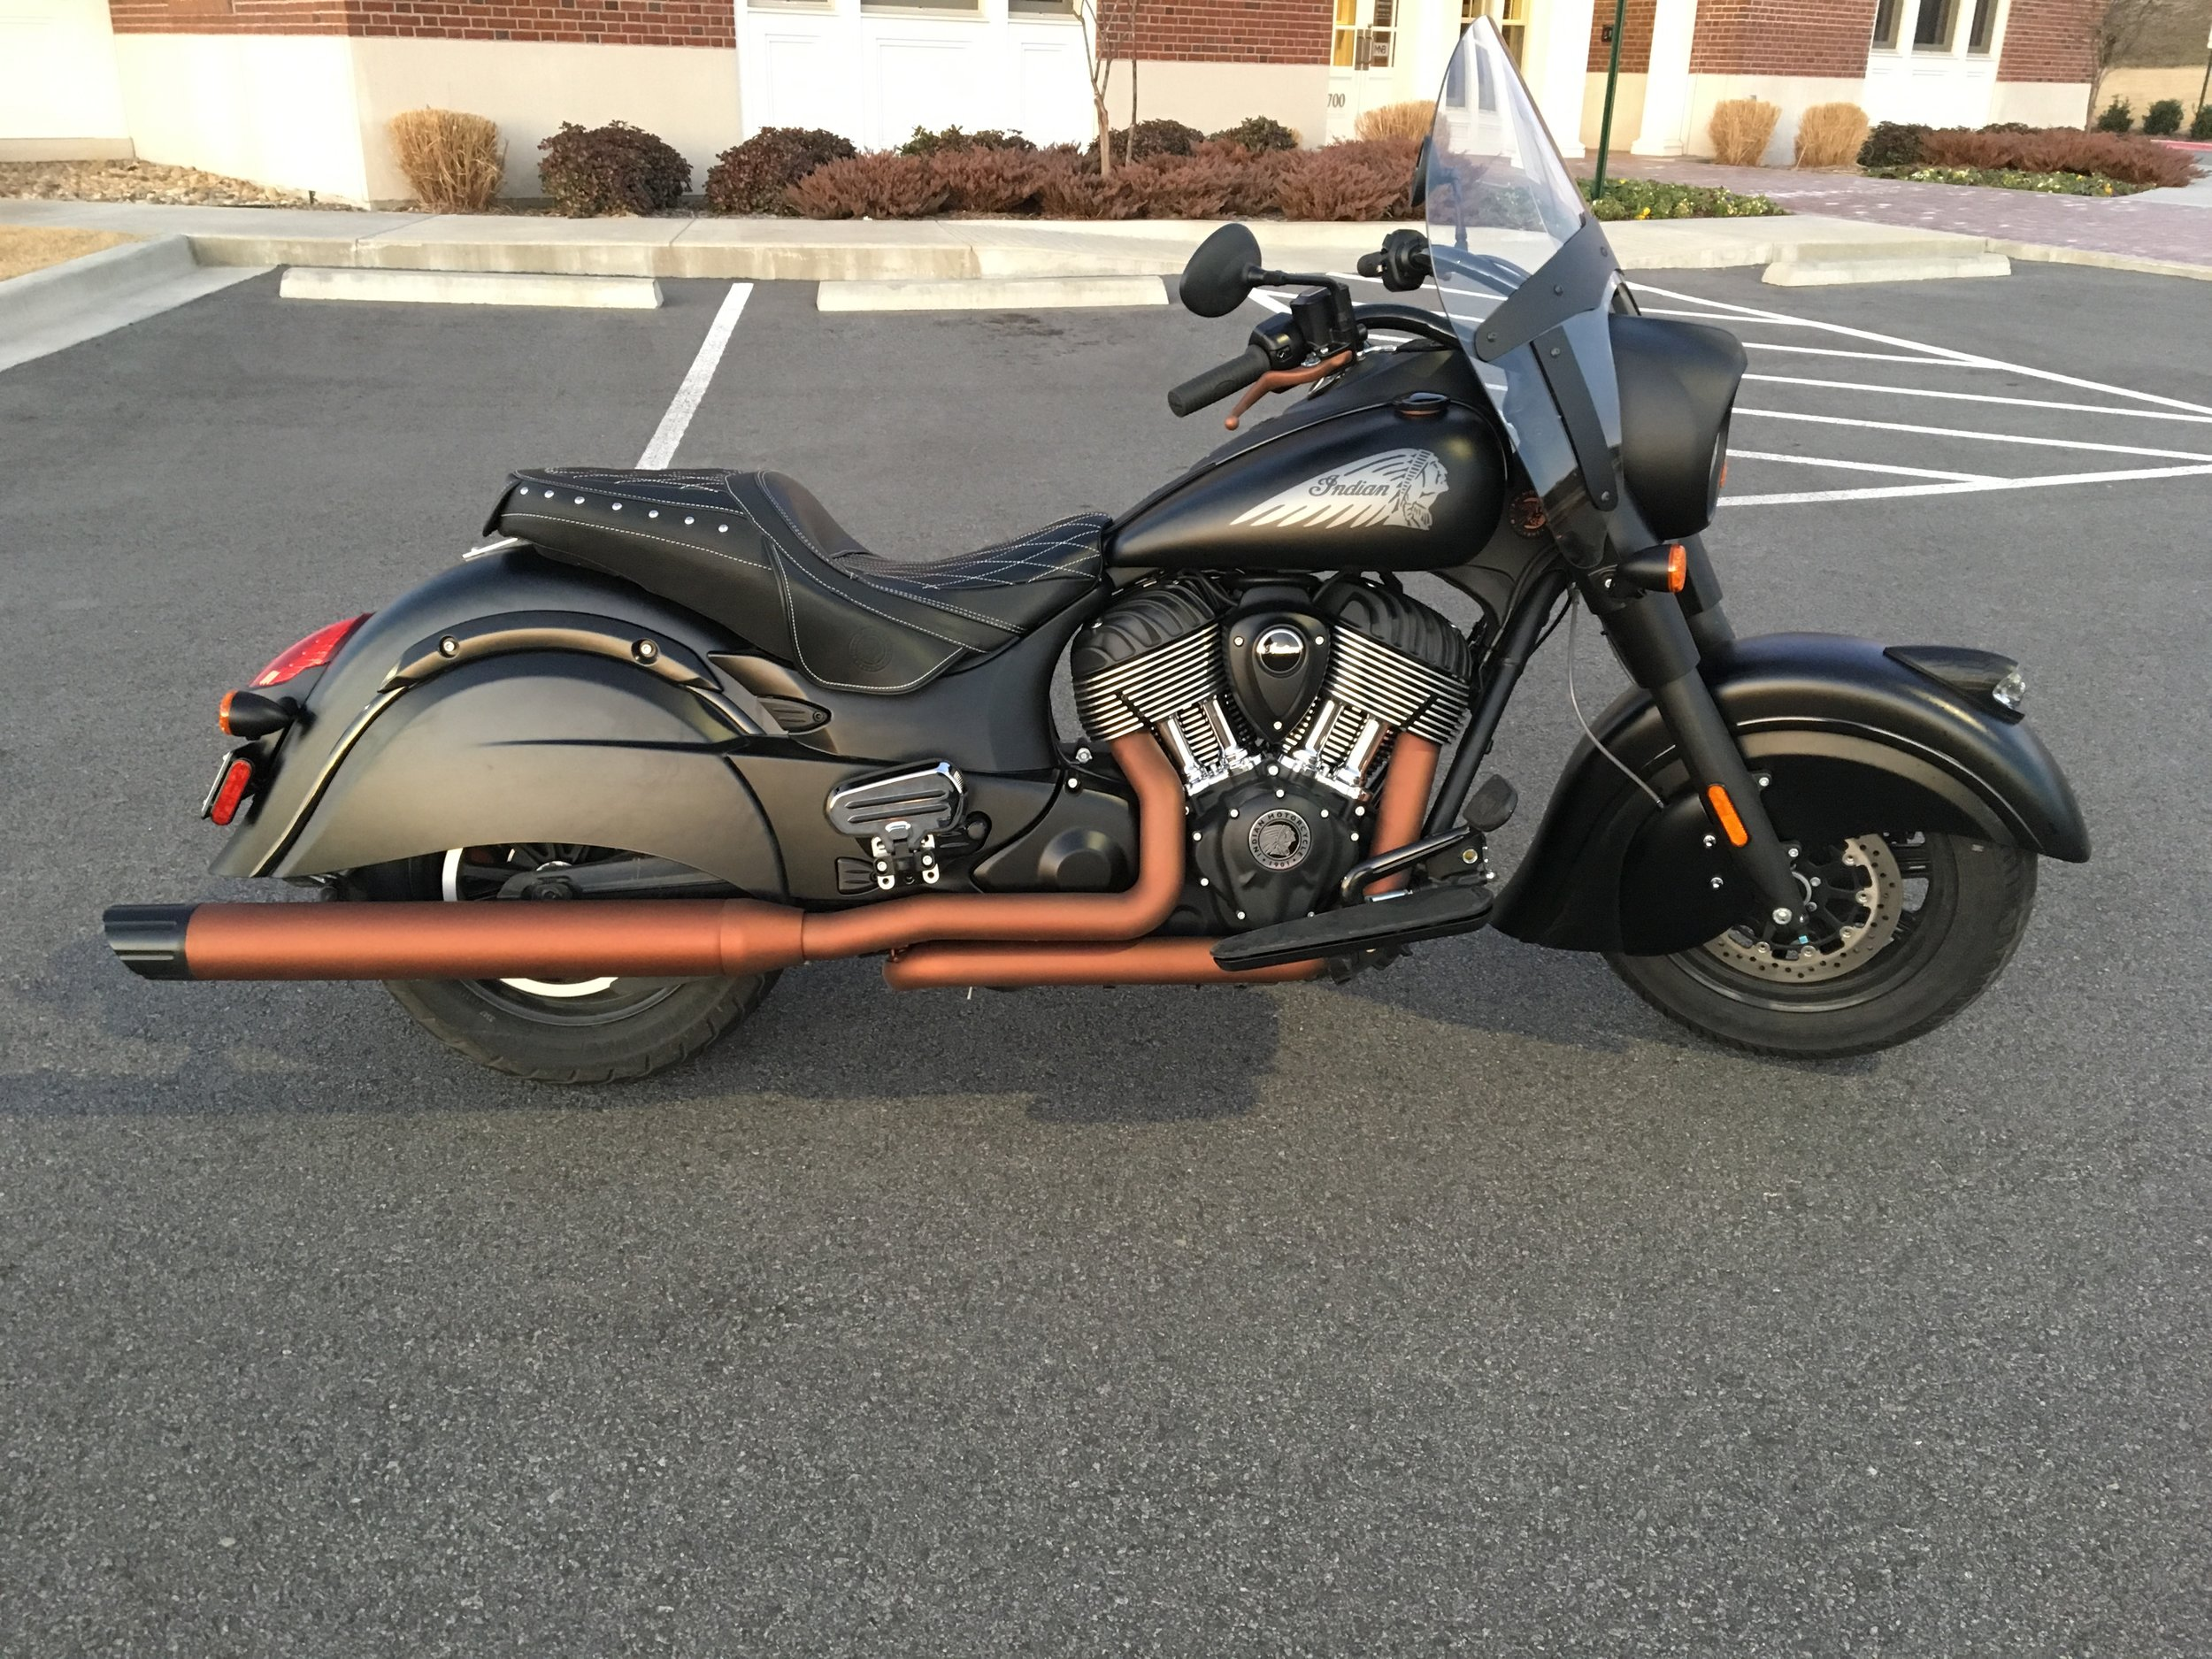 Harley Exhaust in 2062 American Copper